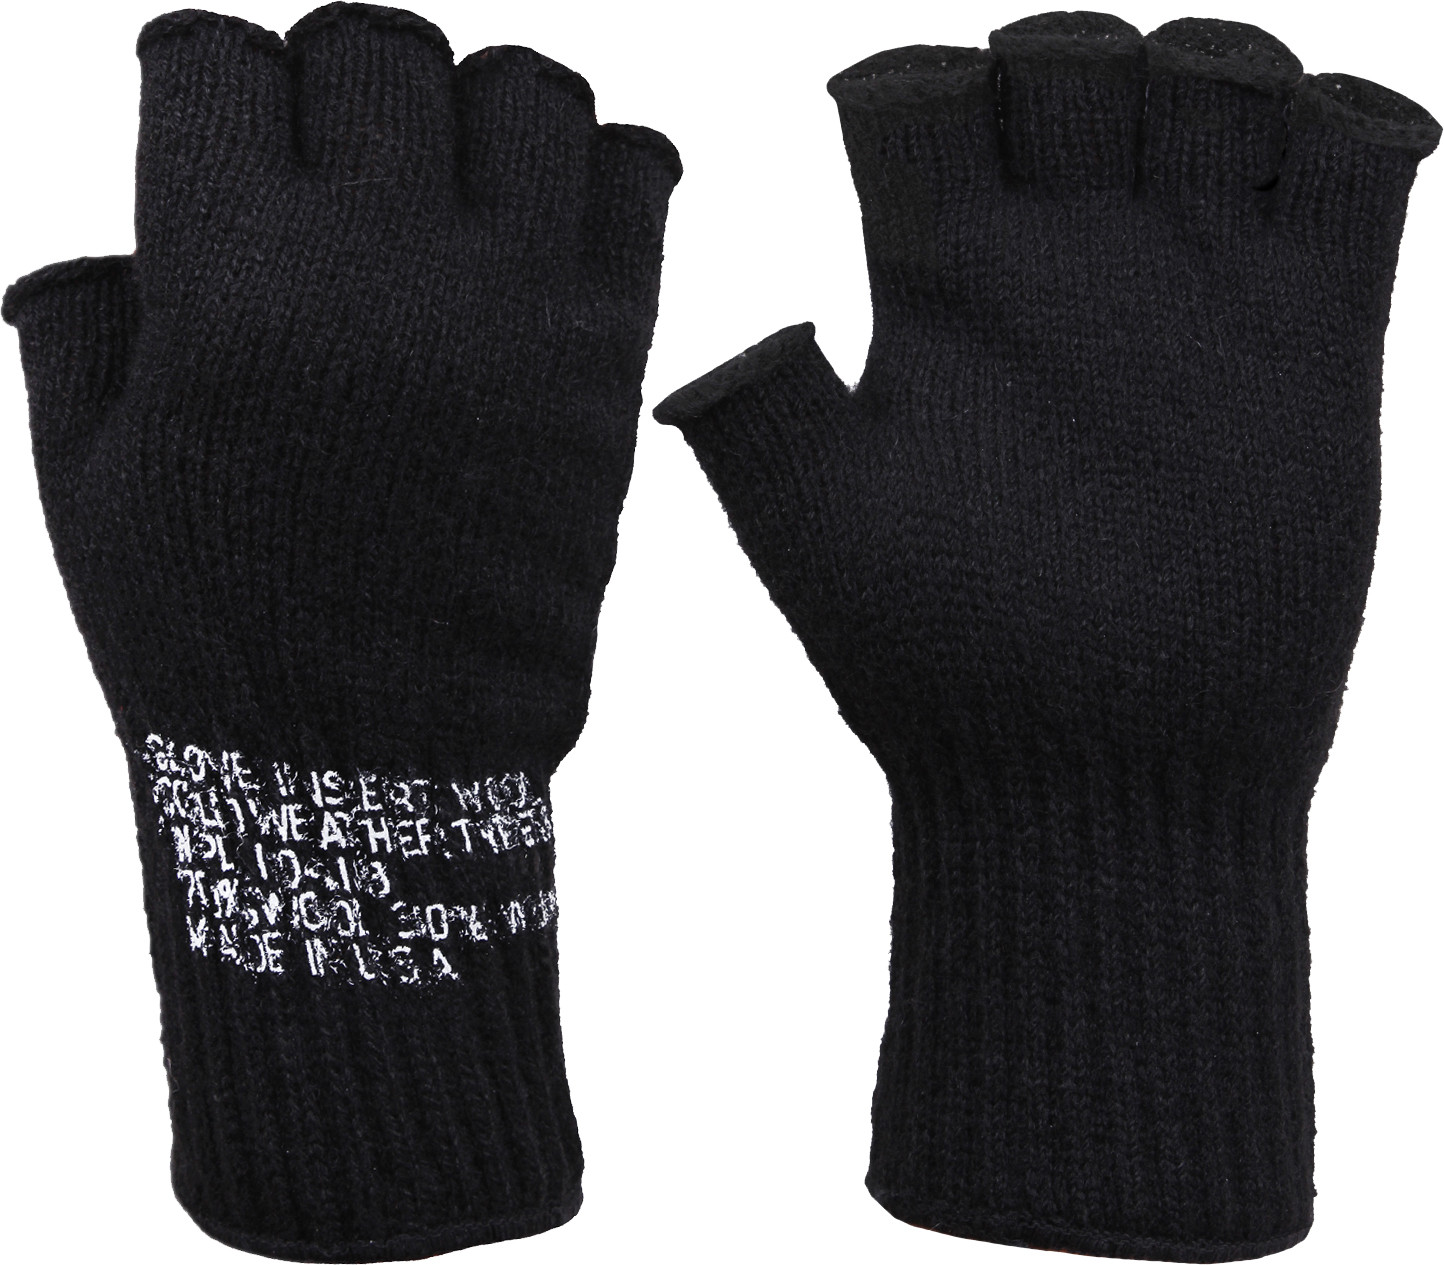 Black Tactical Fingerless Glove Liner Inserts Wool Gloves USA Made c5b0c9838eb